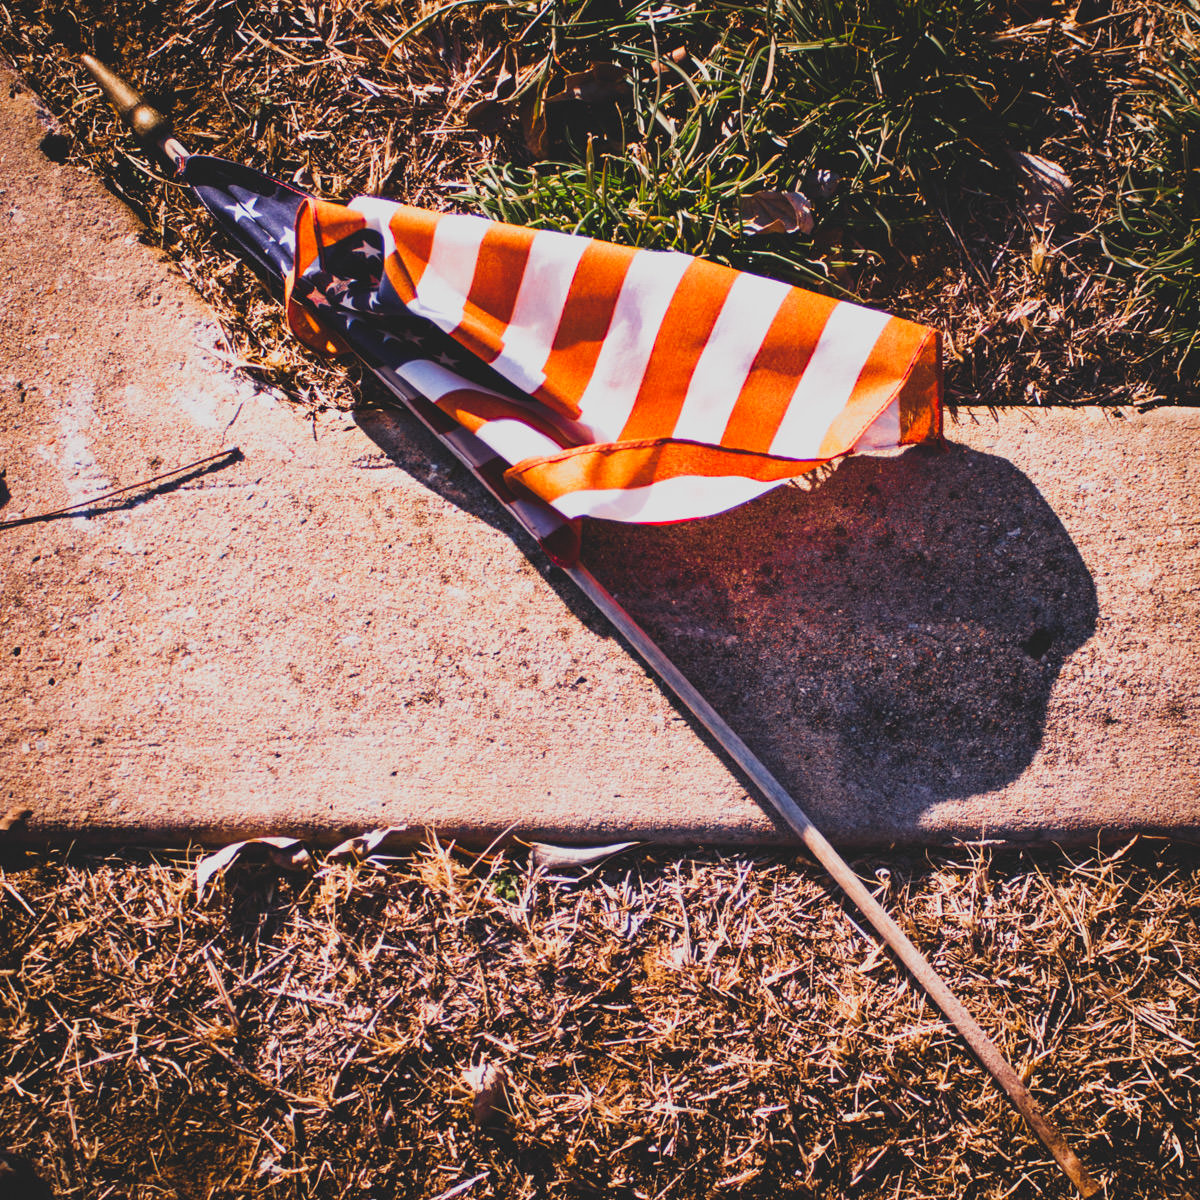 An American flag lying on the ground, fallen from a grave at Minters Chapel Cemetery, DFW Airport, Texas.